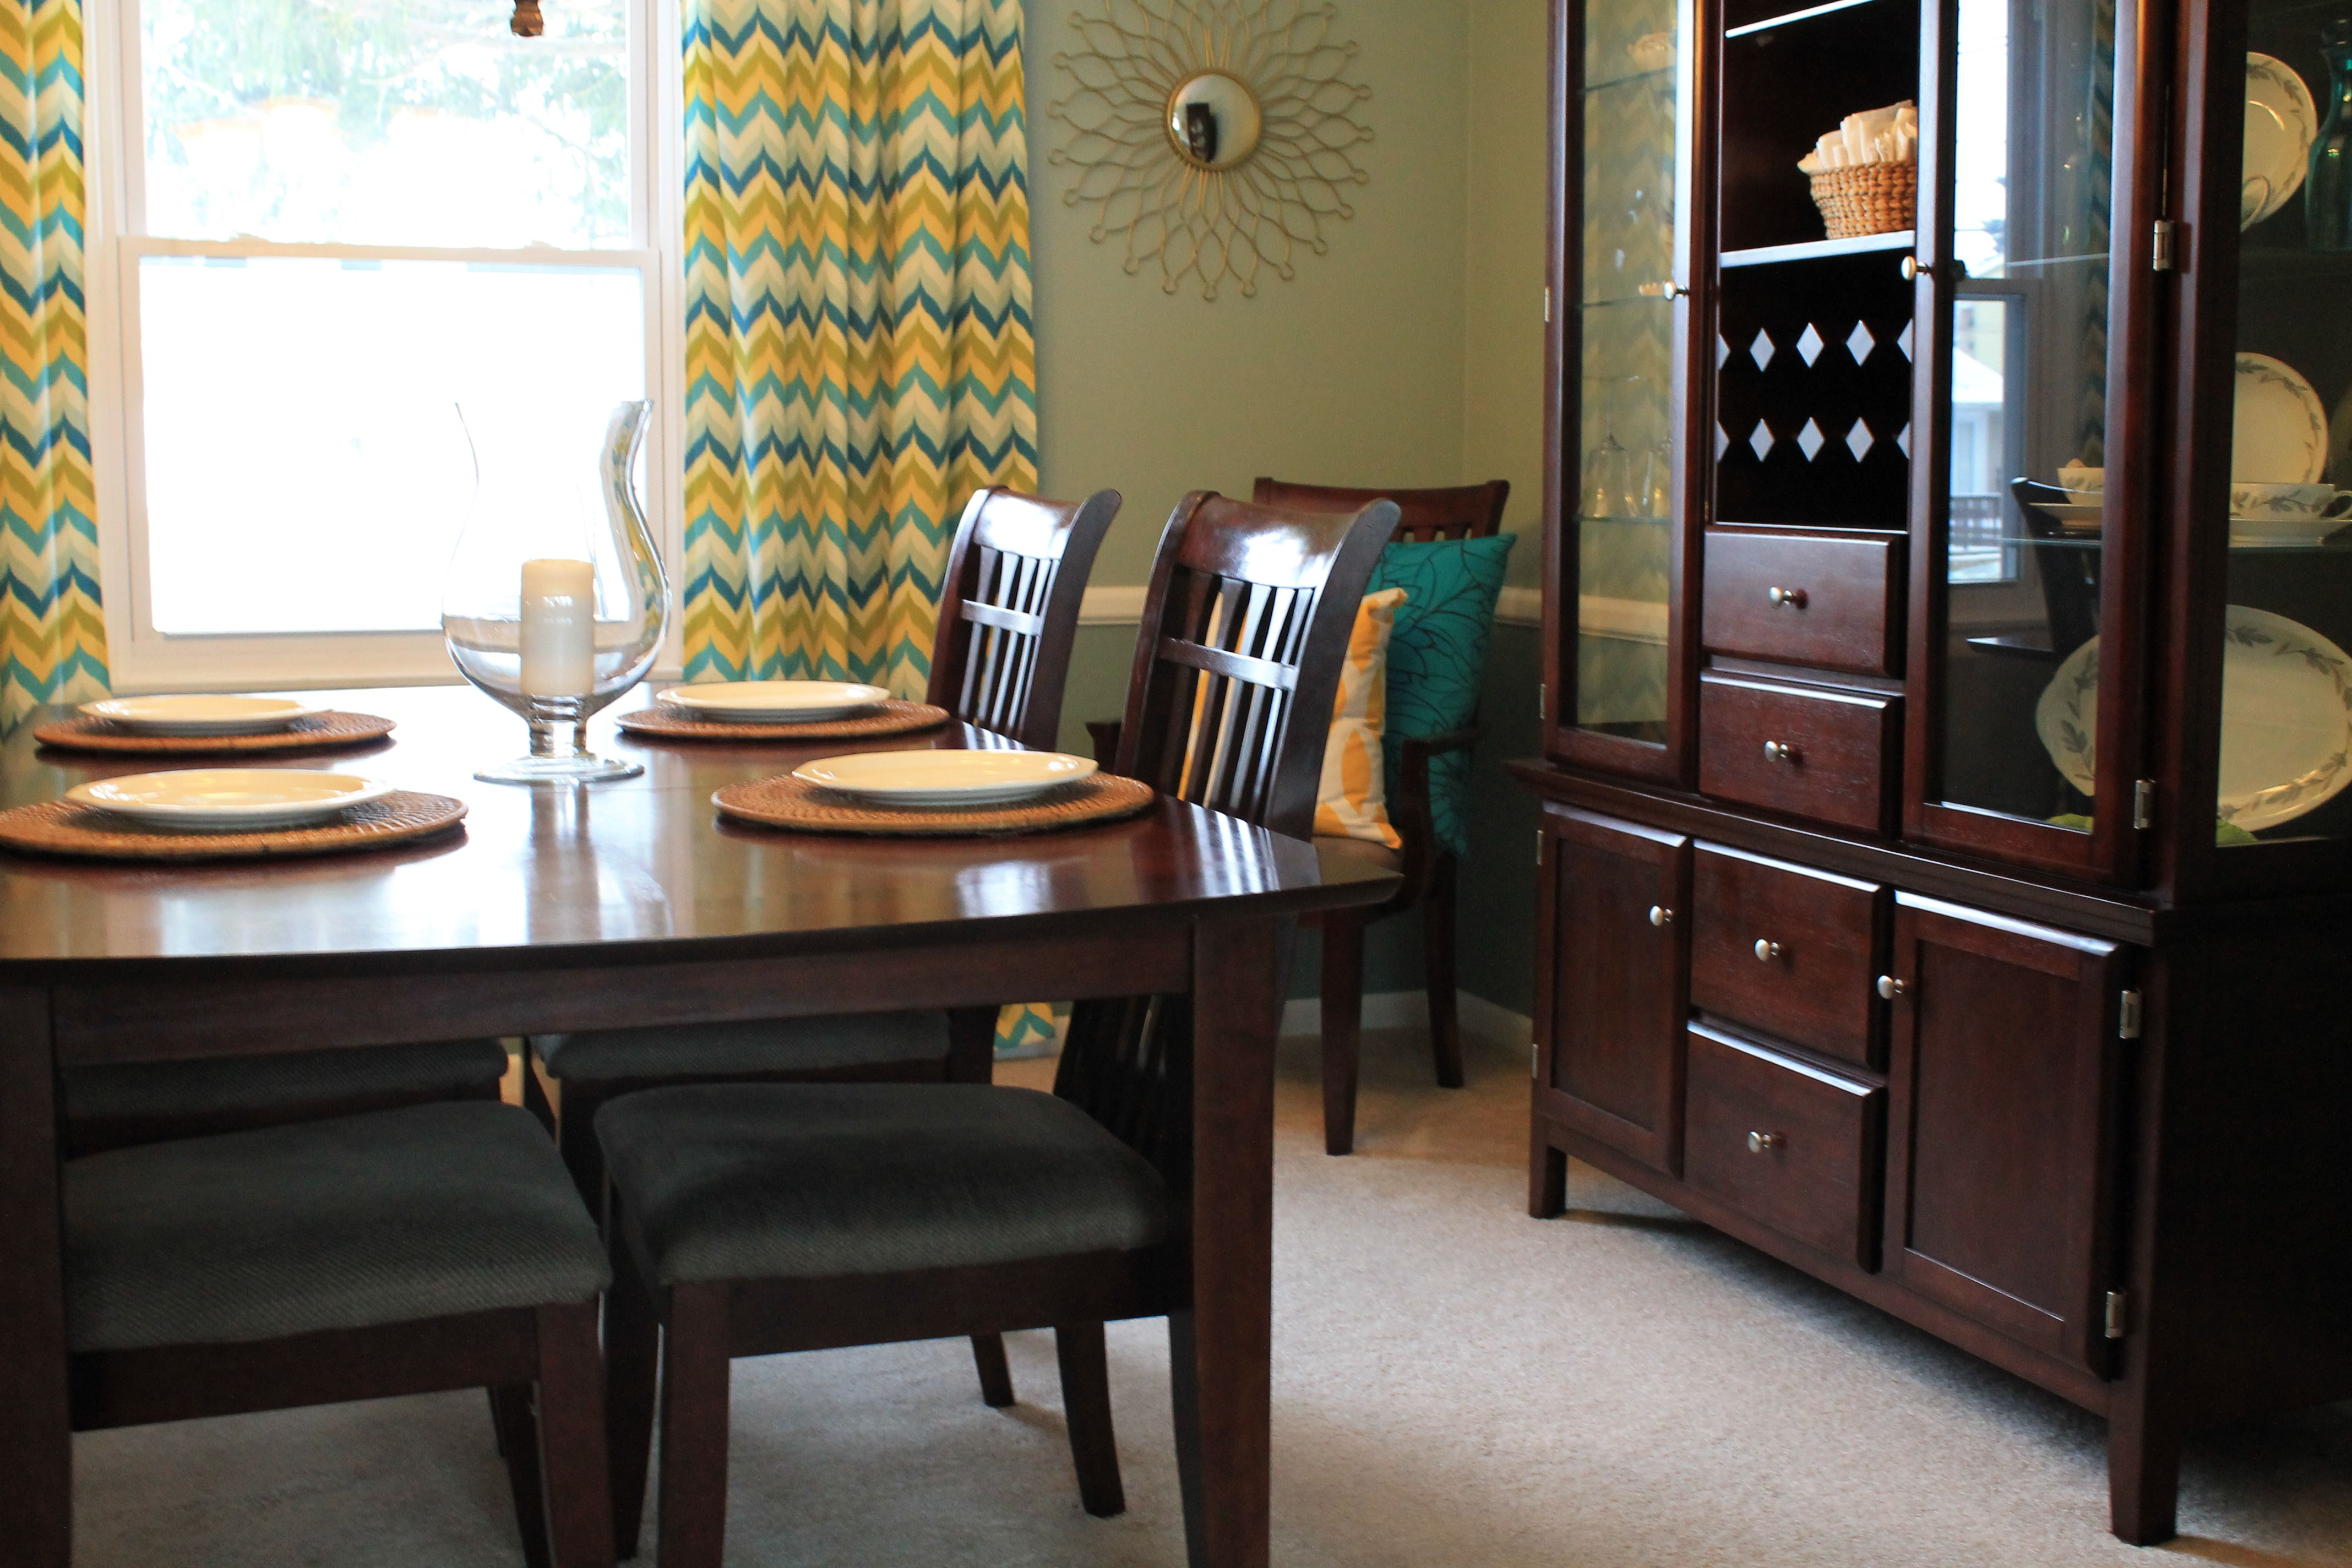 Dining room teal yellow kitchen dining room pinterest for Dining room ideas teal